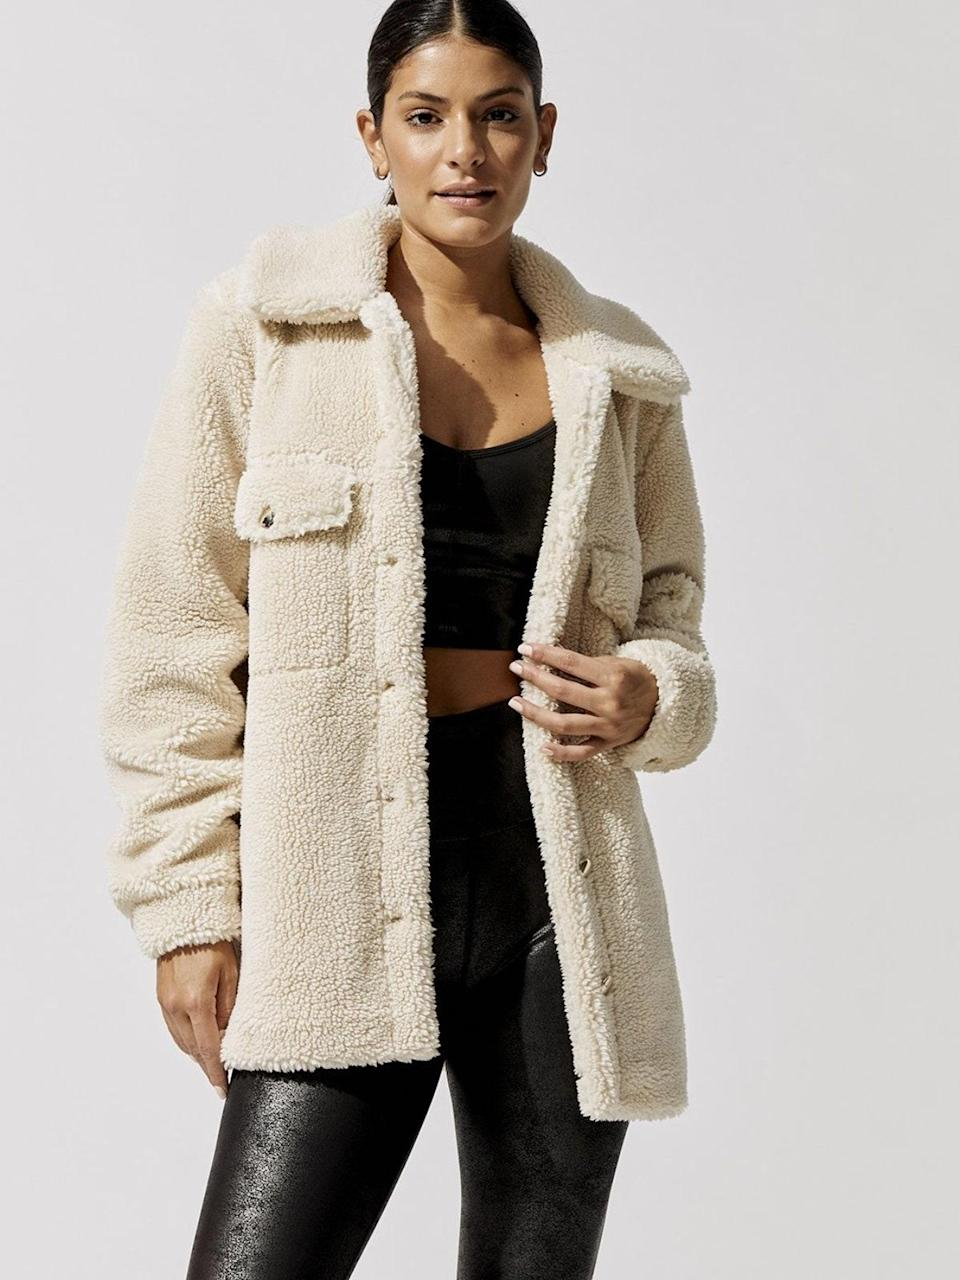 """ICYMI, the sherpa shacket is an MVP for throwing over <a href=""""https://www.glamour.com/gallery/best-unlined-bra-cashmere-bra-to-buy-now?mbid=synd_yahoo_rss"""" rel=""""nofollow noopener"""" target=""""_blank"""" data-ylk=""""slk:cashmere bras"""" class=""""link rapid-noclick-resp"""">cashmere bras</a> to keep goosebumps at bay. $168, Carbon38. <a href=""""https://carbon38.com/products/sherpa-shacket"""" rel=""""nofollow noopener"""" target=""""_blank"""" data-ylk=""""slk:Get it now!"""" class=""""link rapid-noclick-resp"""">Get it now!</a>"""